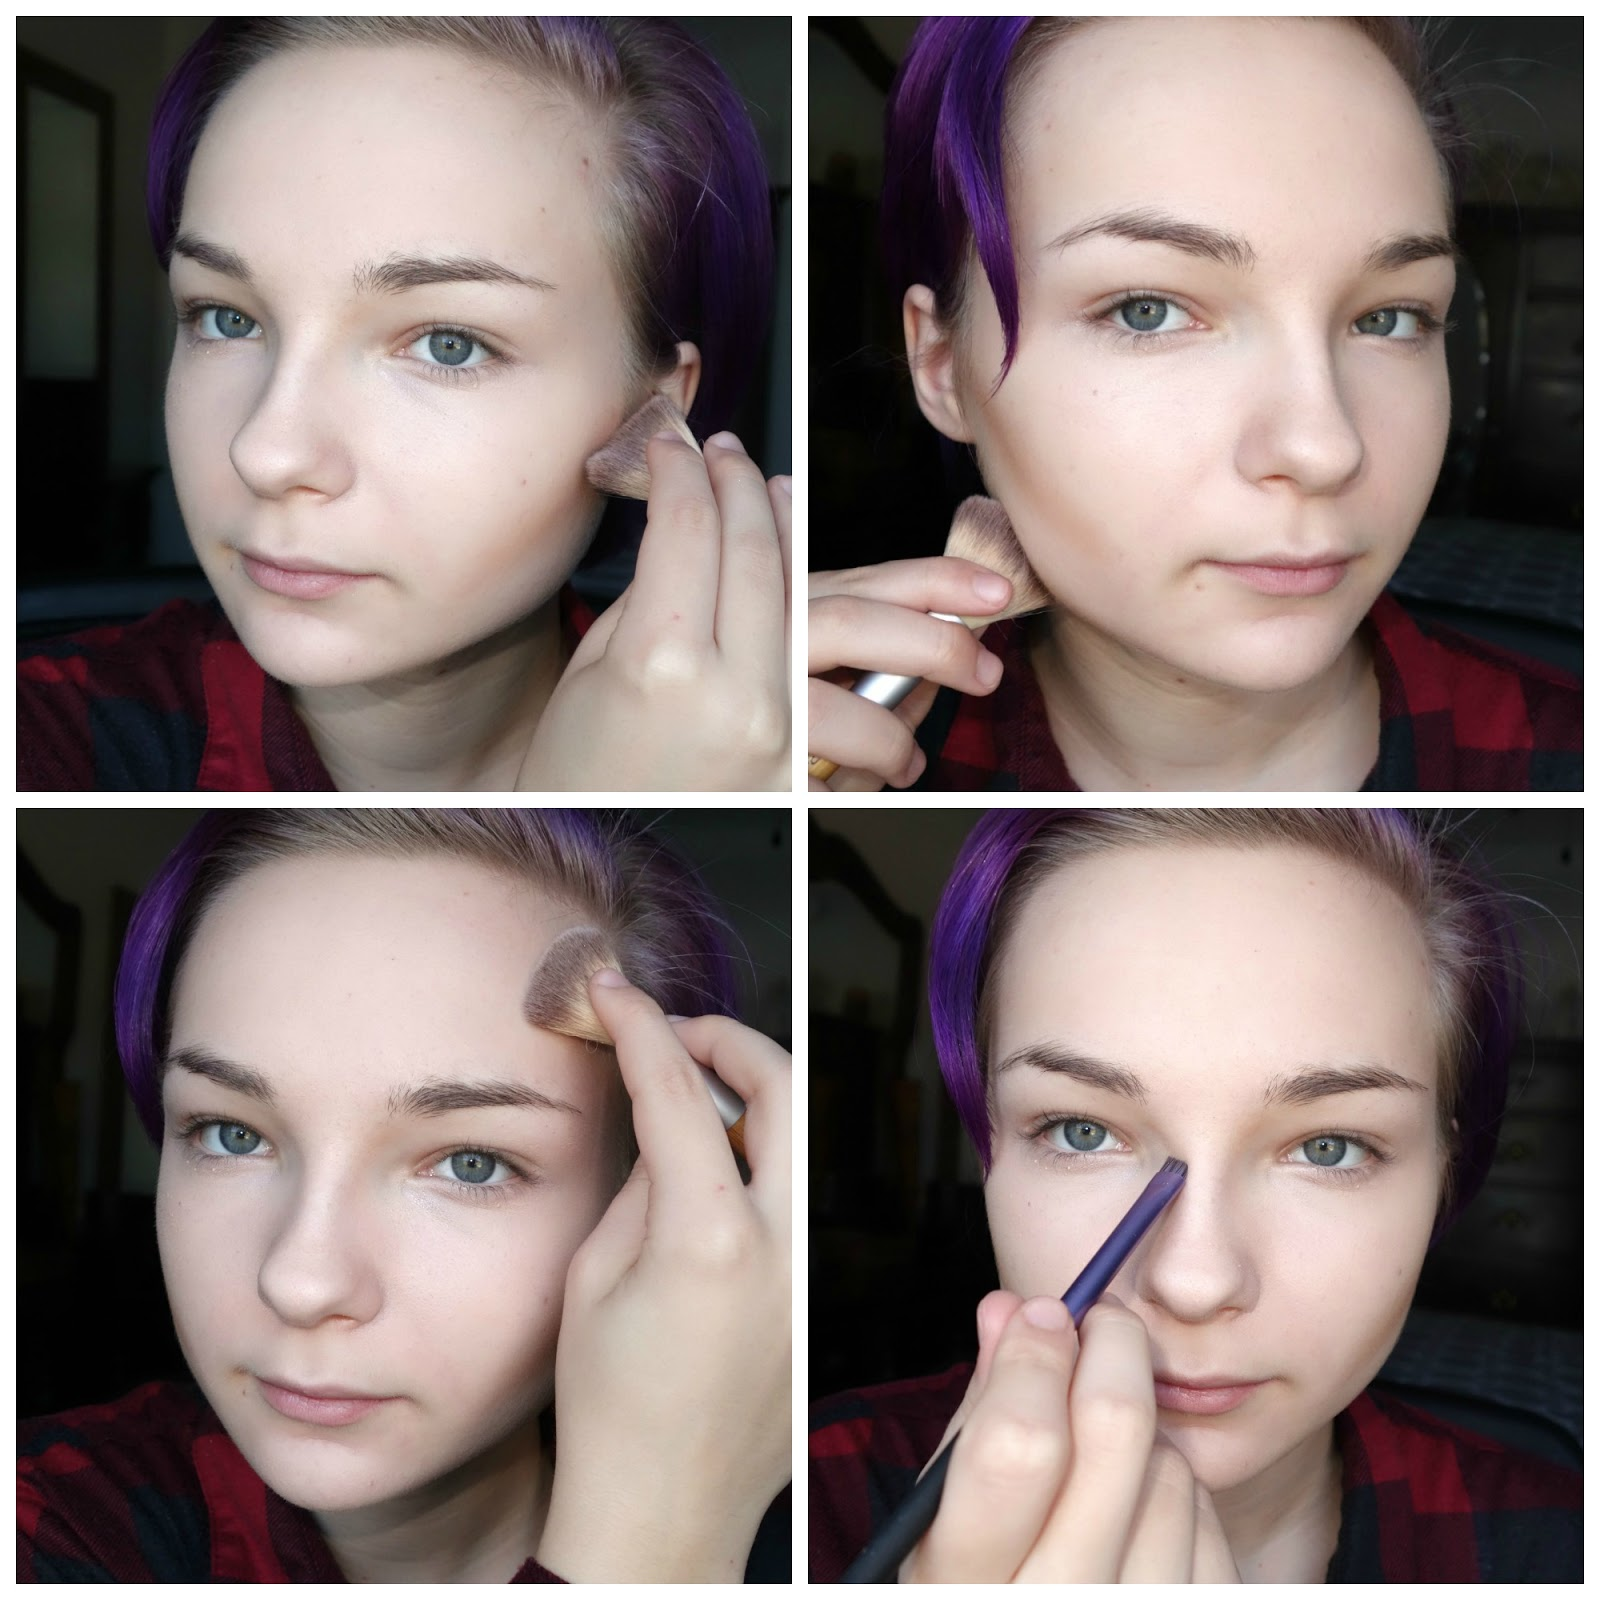 To Contour, I'm Beginning With Fawn, The Bottom Middle Shade, And Applying  It Along My Cheekbones, Following My Natural Contour Until I Reach Just  Beneath